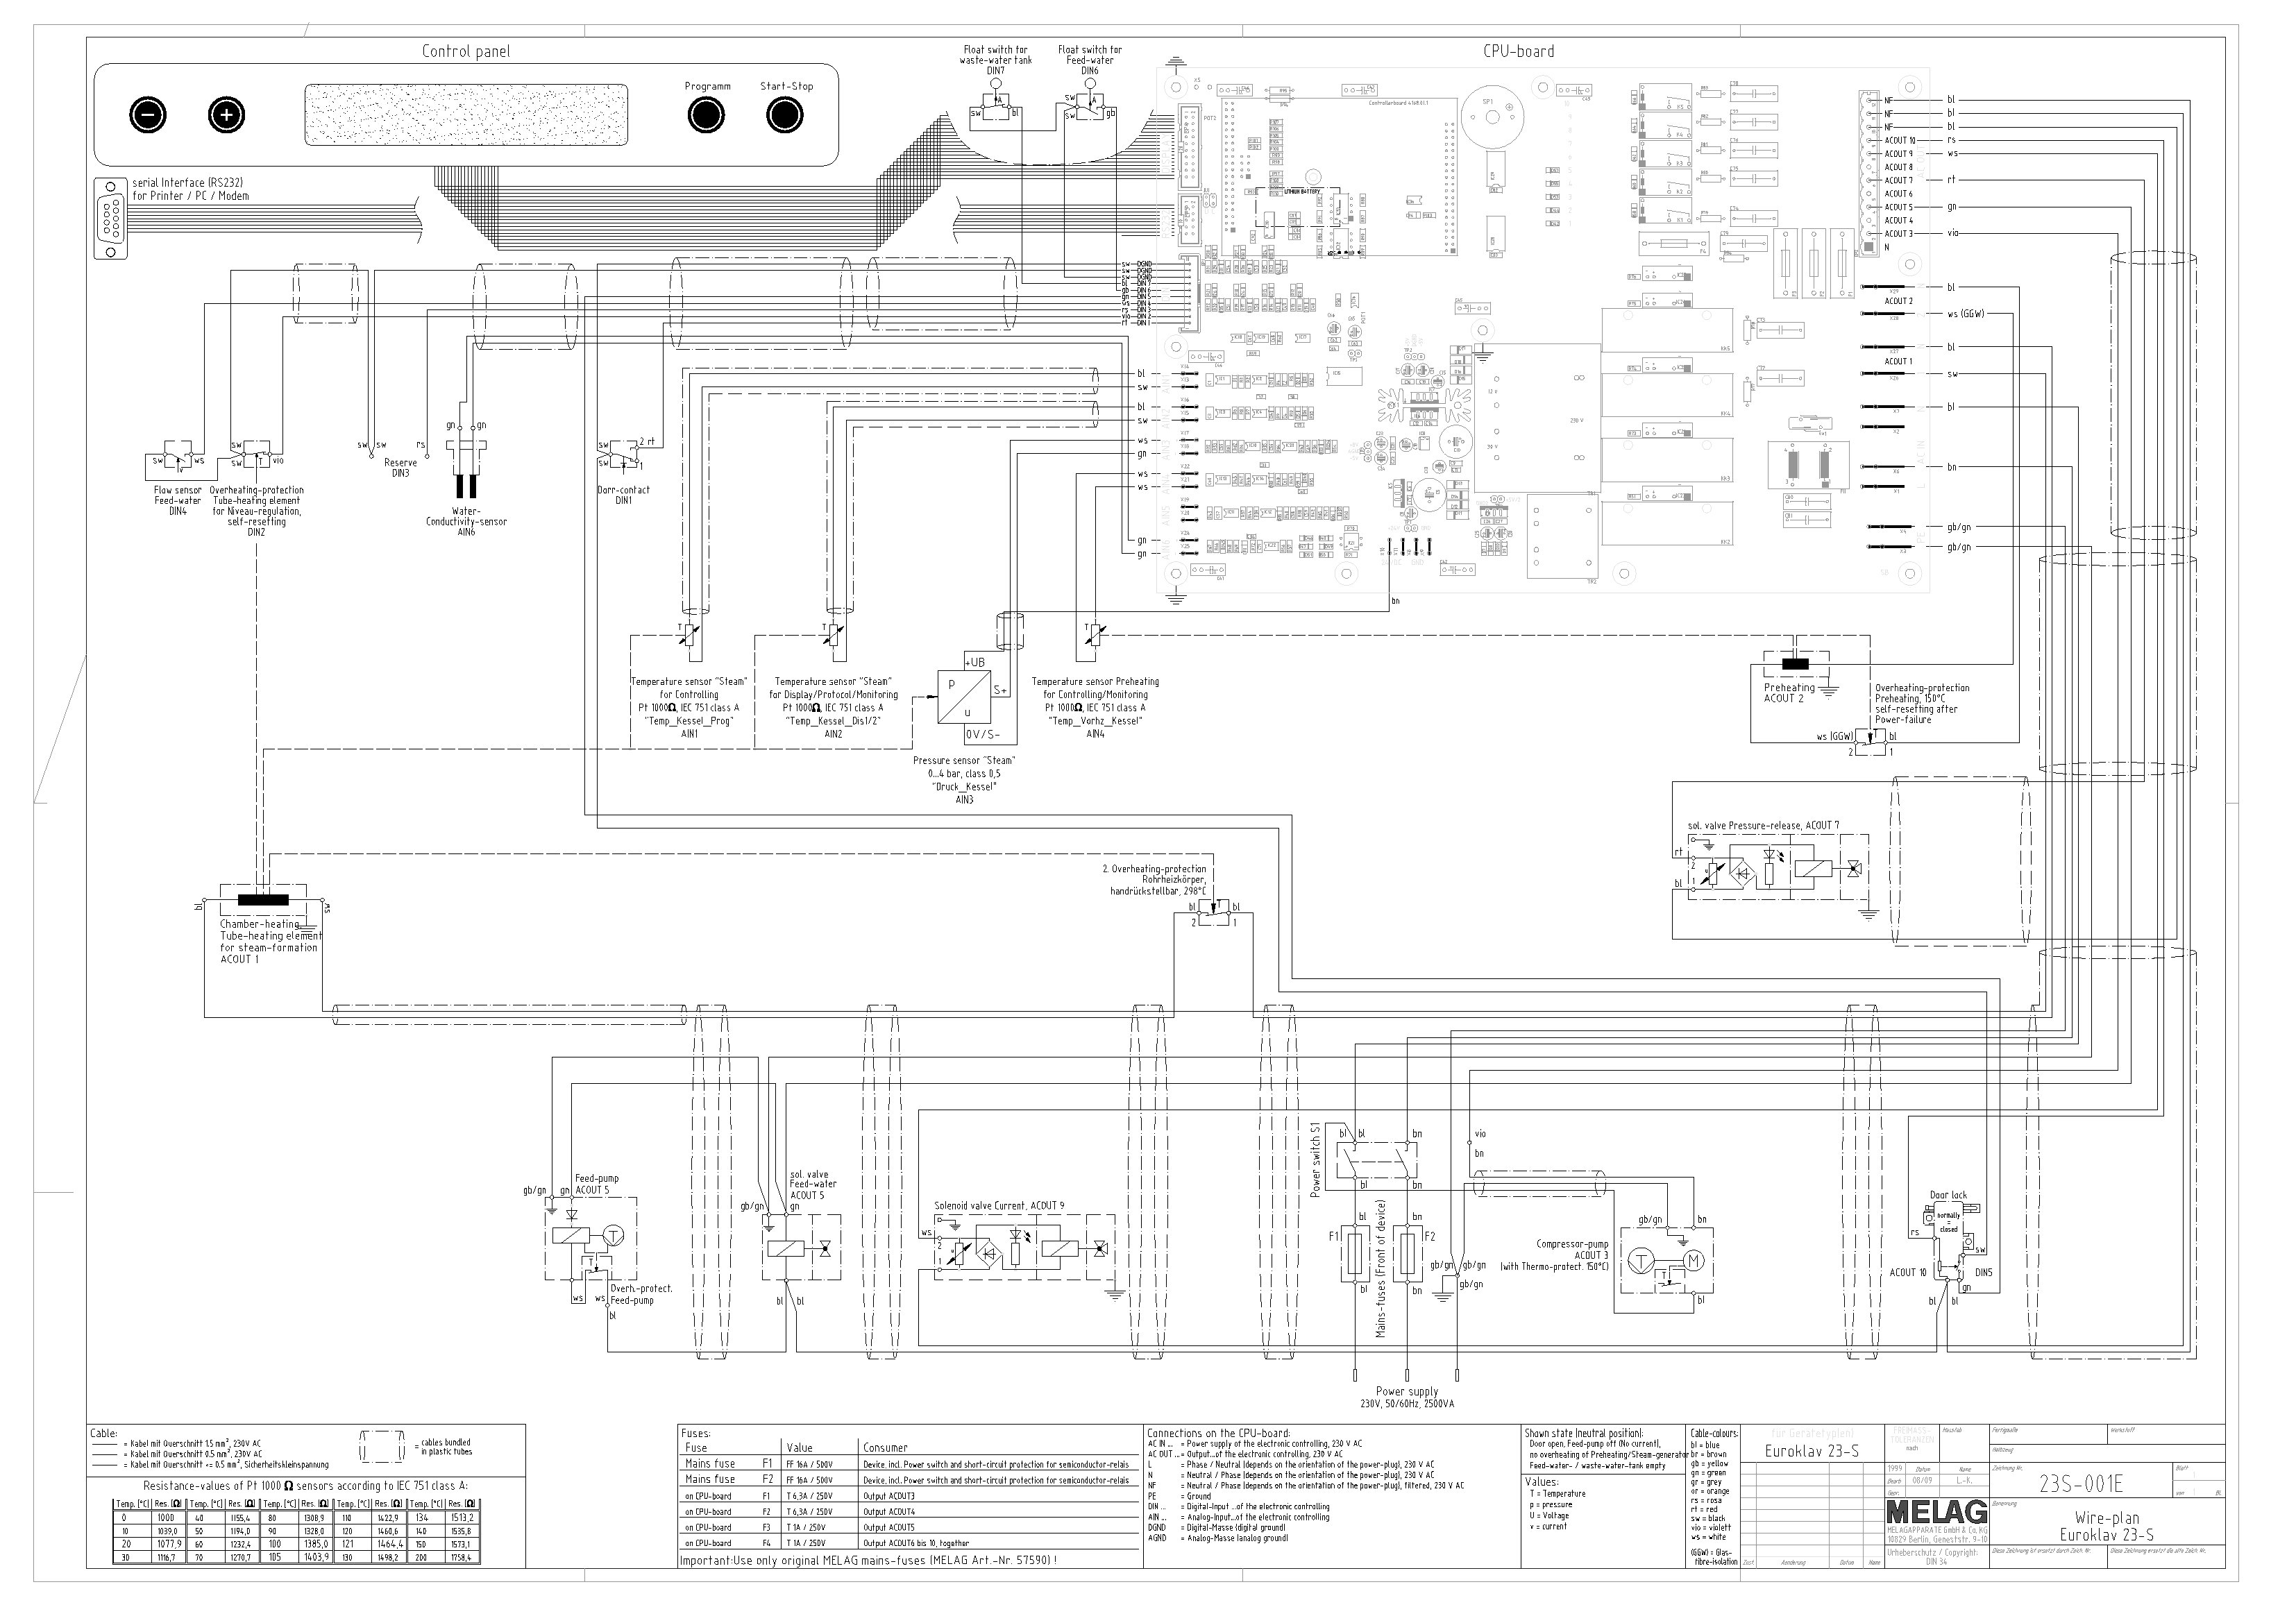 Melag_23 S_ _Wire_plan frank's autoclaves Light Switch Wiring Diagram at creativeand.co